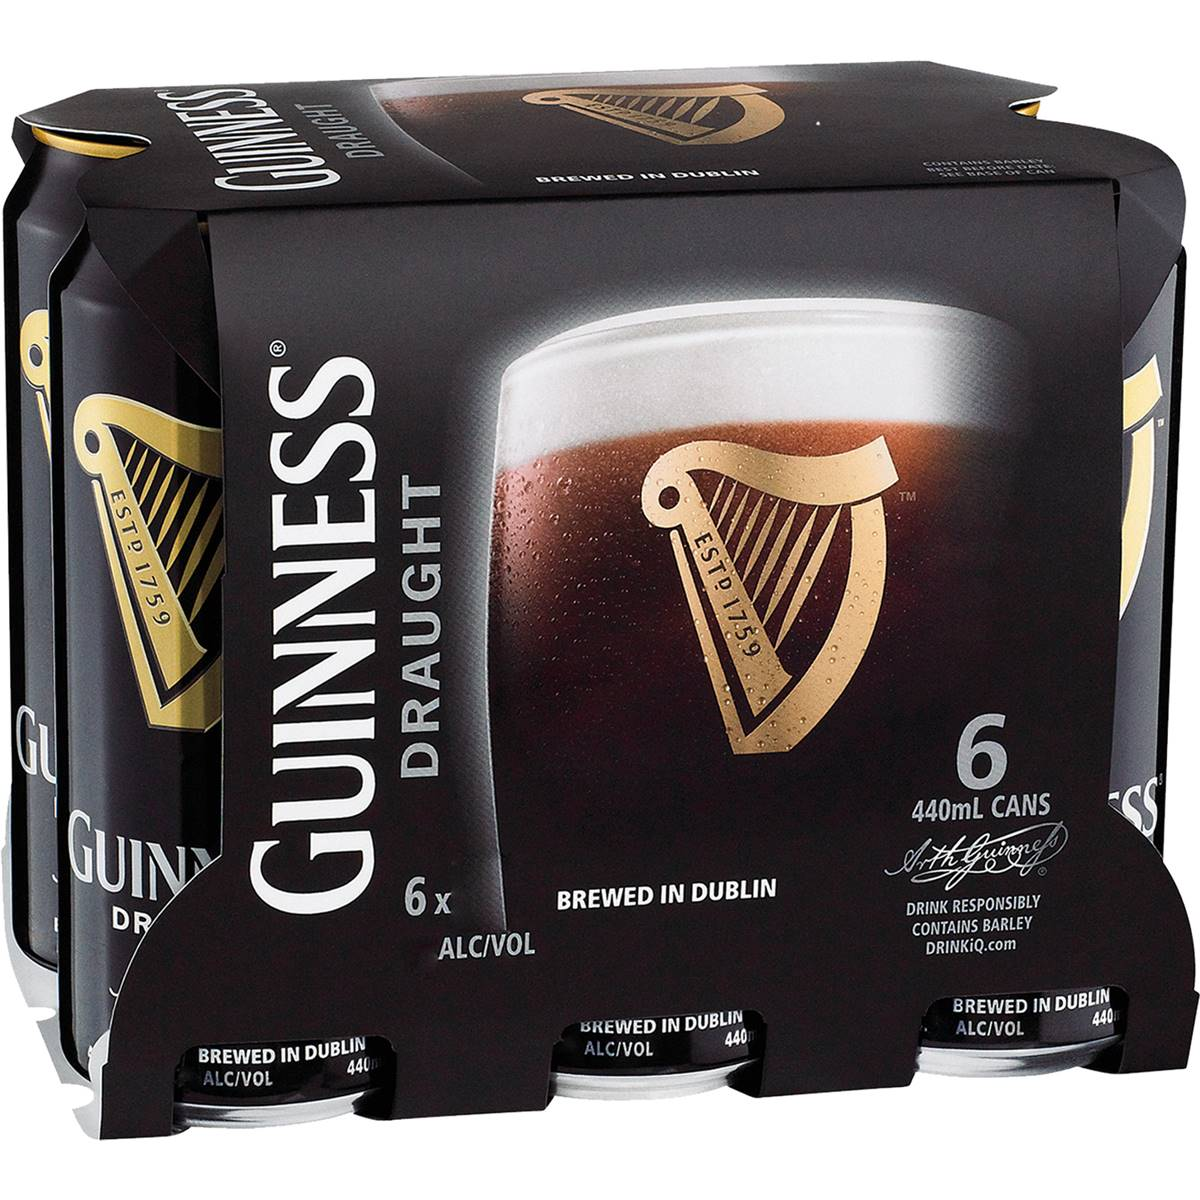 Guinness Draught Stout Cans